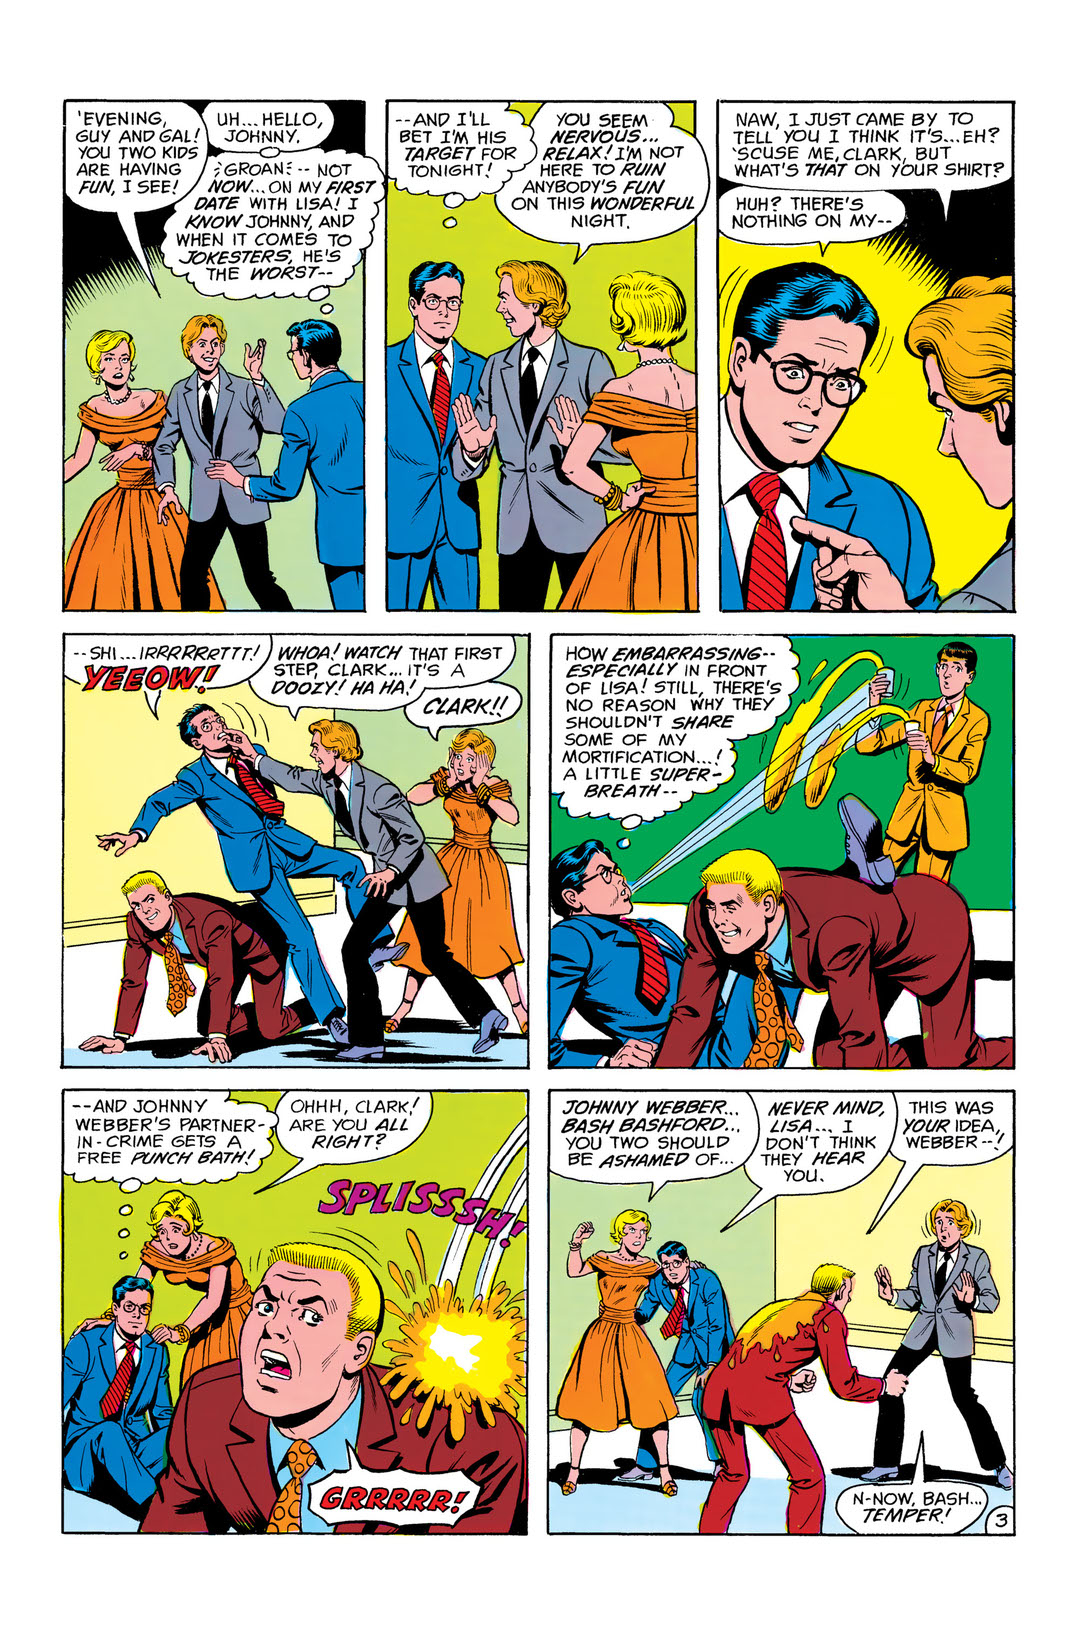 Read New Adventures of Superboy (1980-) #42 on DC Universe